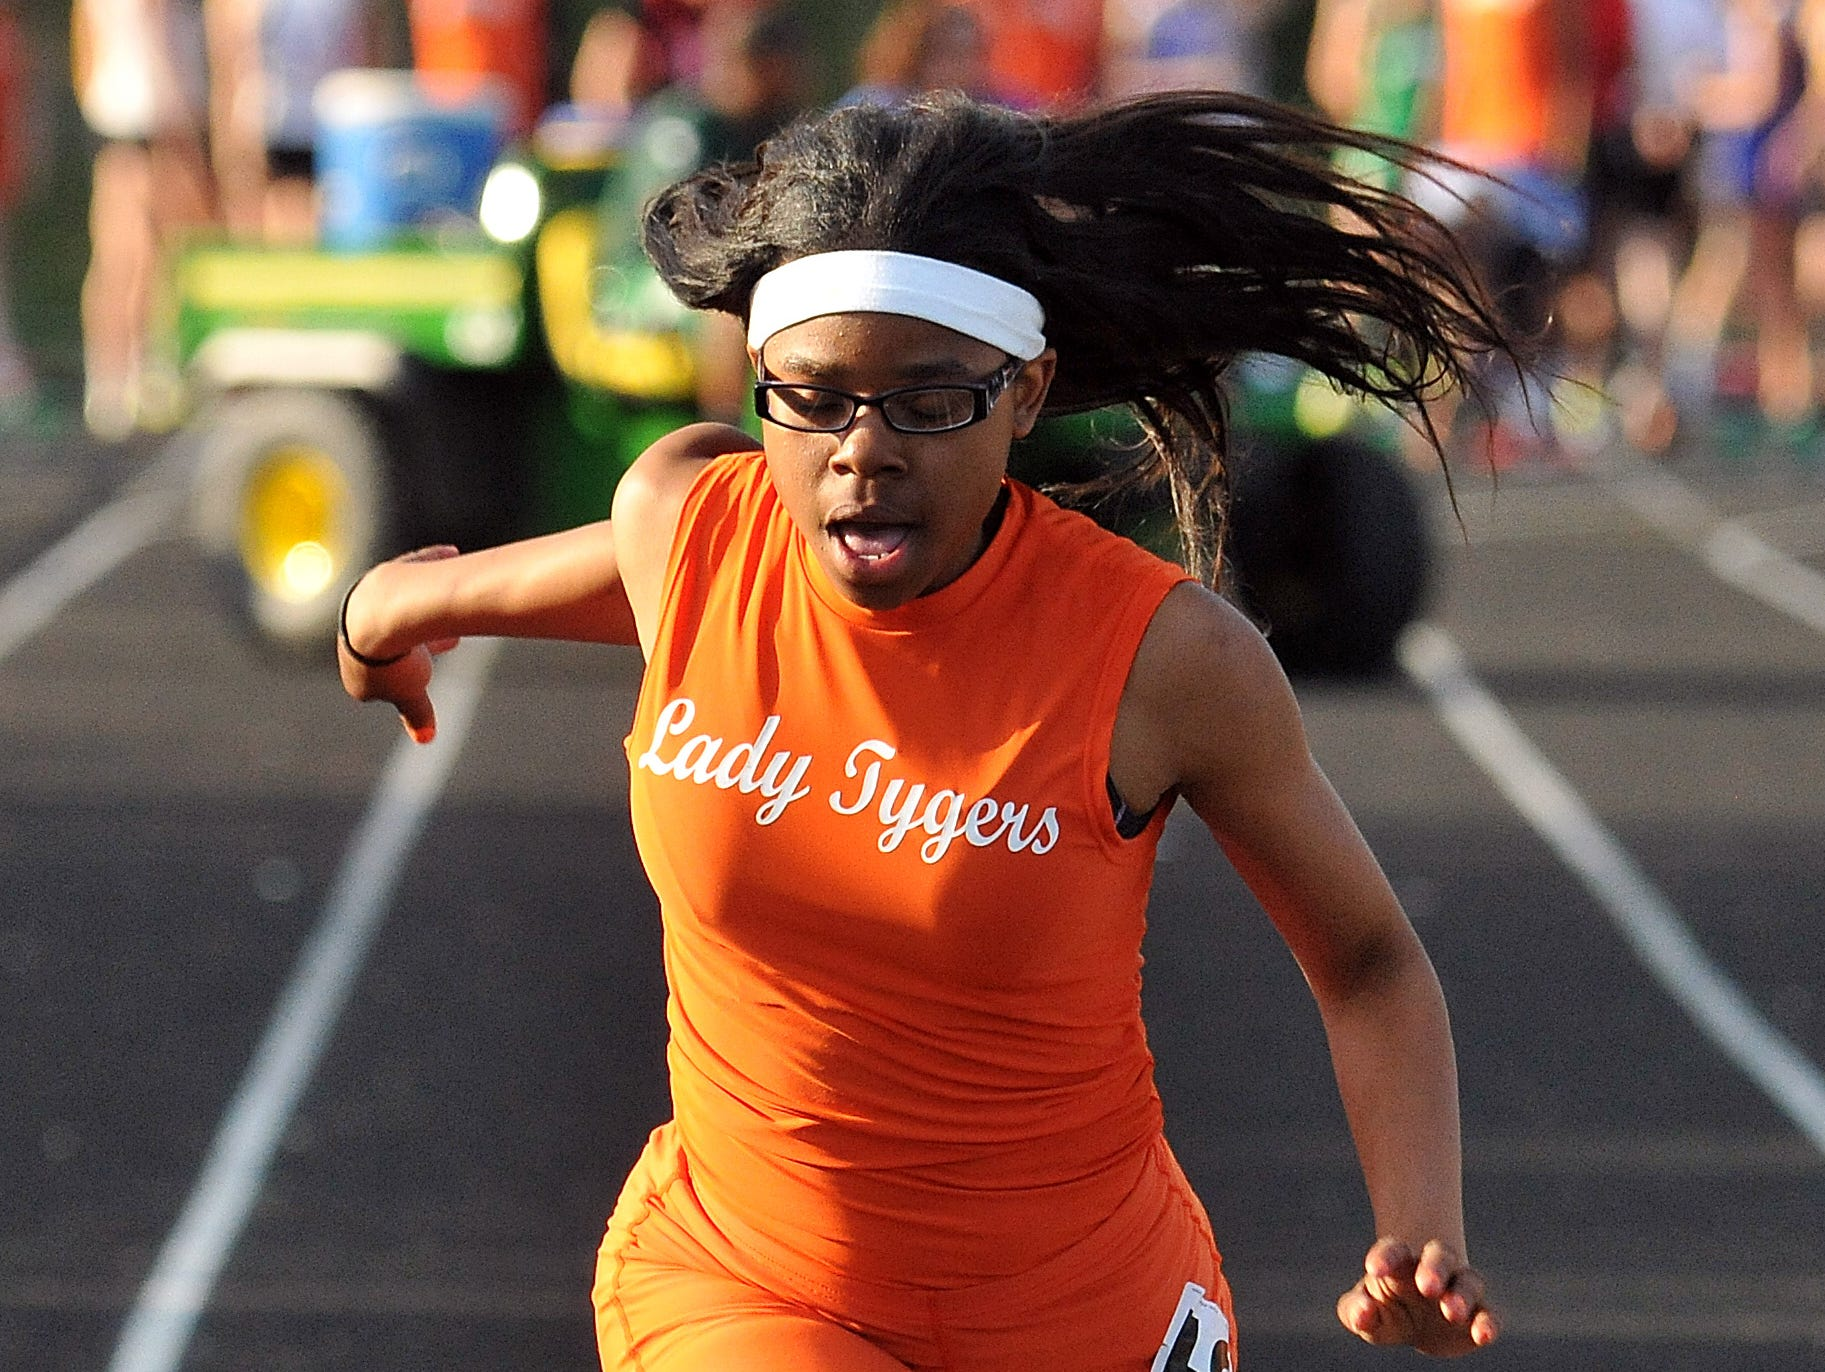 Mansfield Senior's Alaya Grose crosses the finish line during the girls 100 Meter Dash at Madison High School Friday.